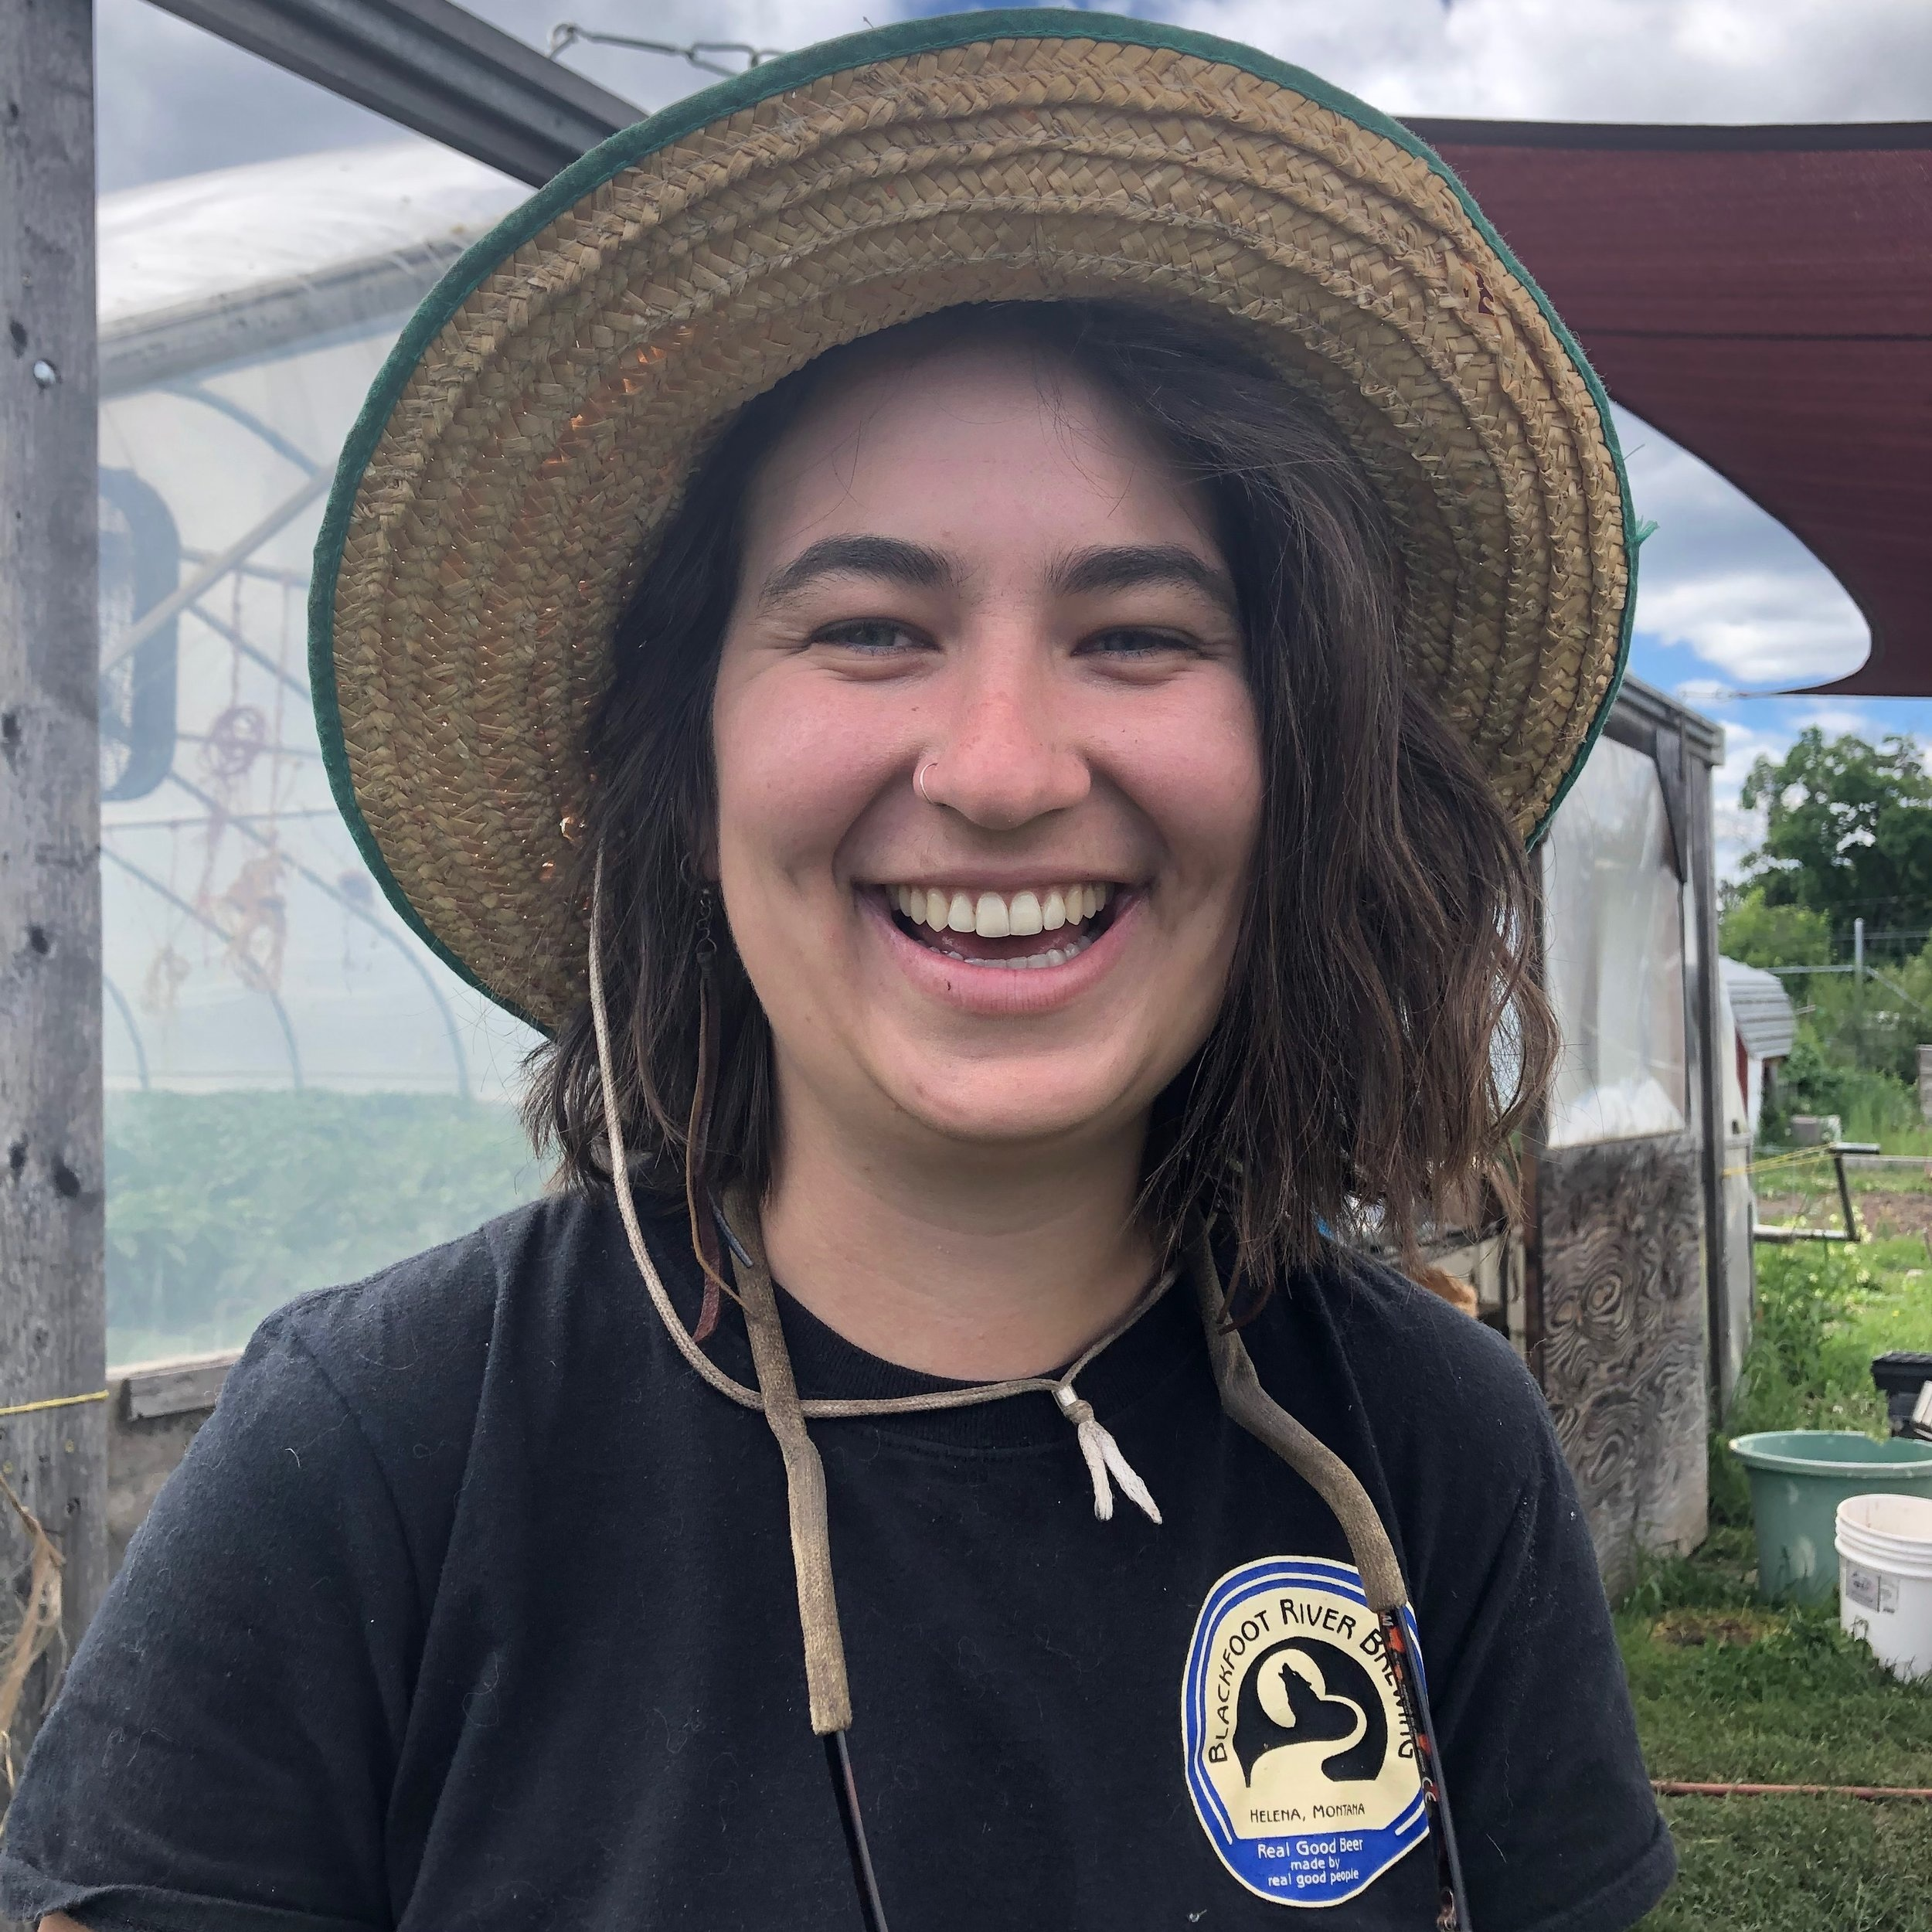 Clare Vergobbi, Orchard Gardens Manager, outside of the Orchard Gardens greenhouse (where almost all of the veggies at 3 of our 4 farms are born).